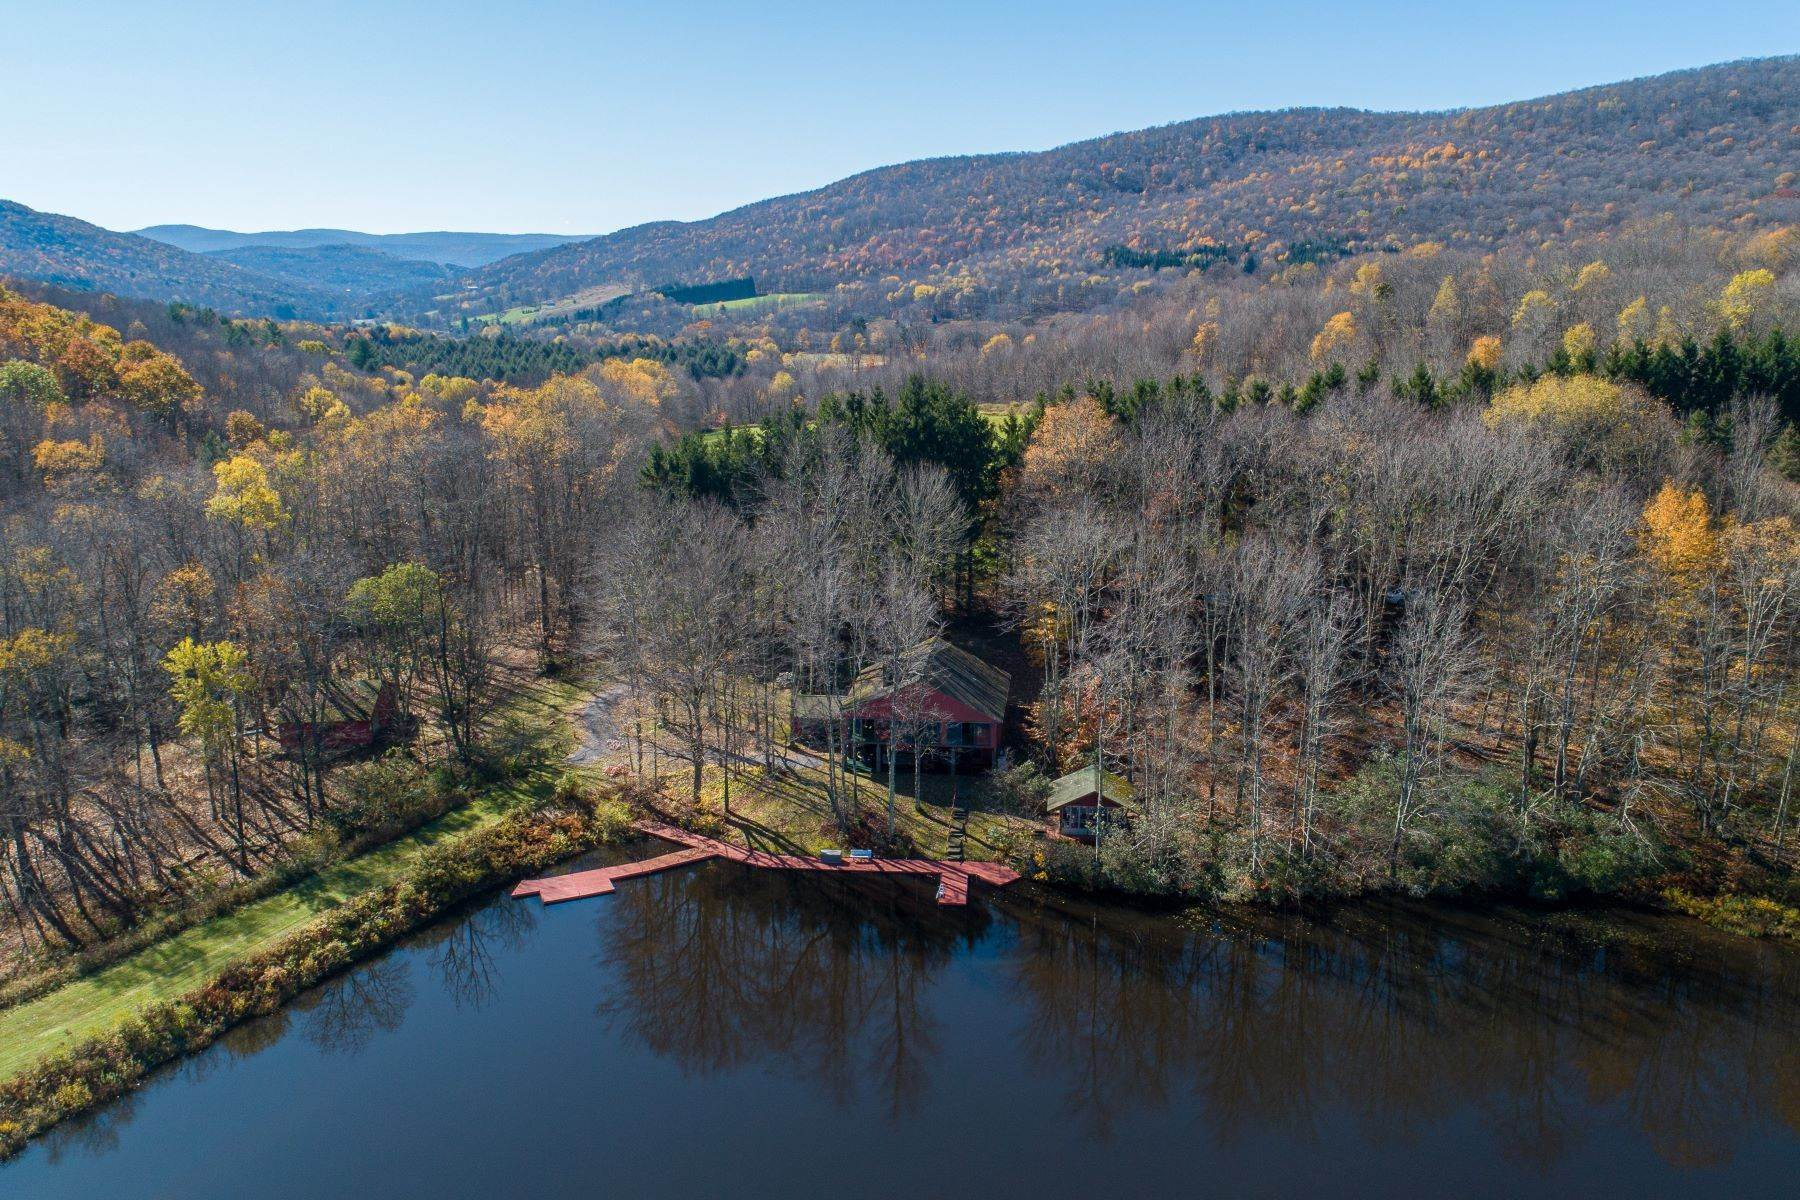 Single Family Homes for Sale at Realty Exceeds the Dreams on 17 Acre Private Lake 444 Skunk Hollow Road, Off Fall Clove Rd Andes, New York 13731 United States